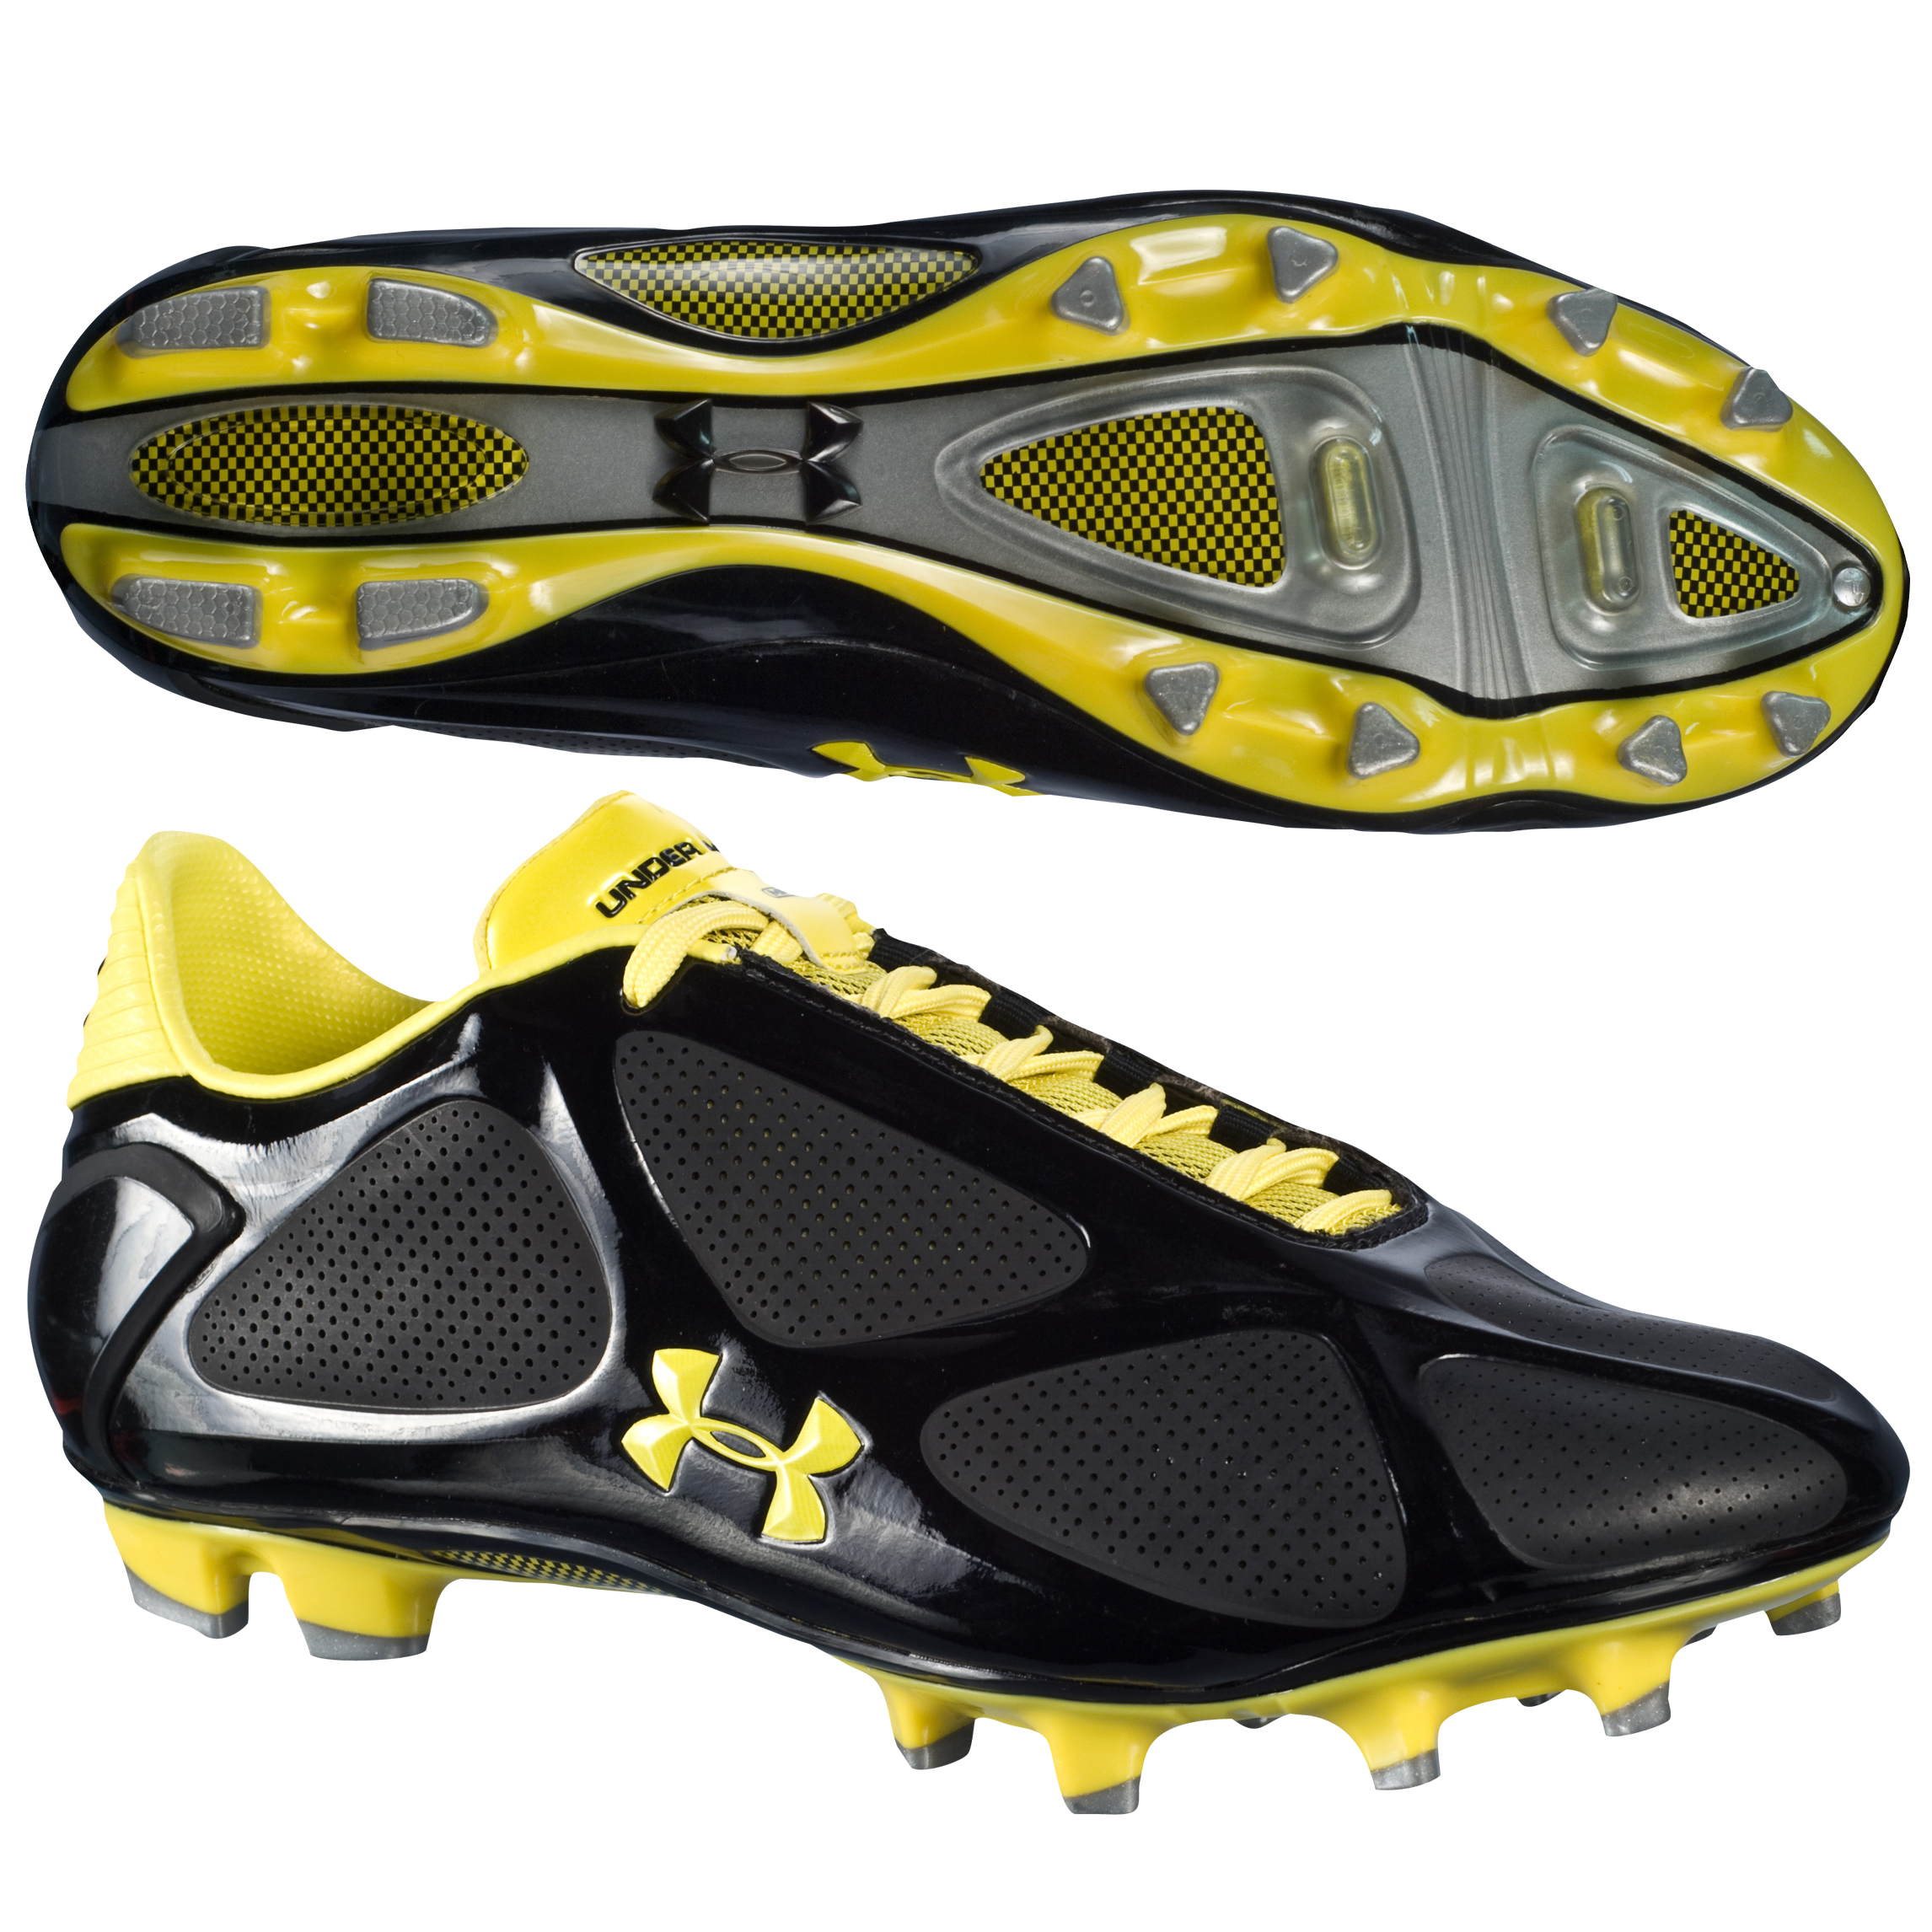 Under Armour Create Pro Firm Ground Football Boots -Bla